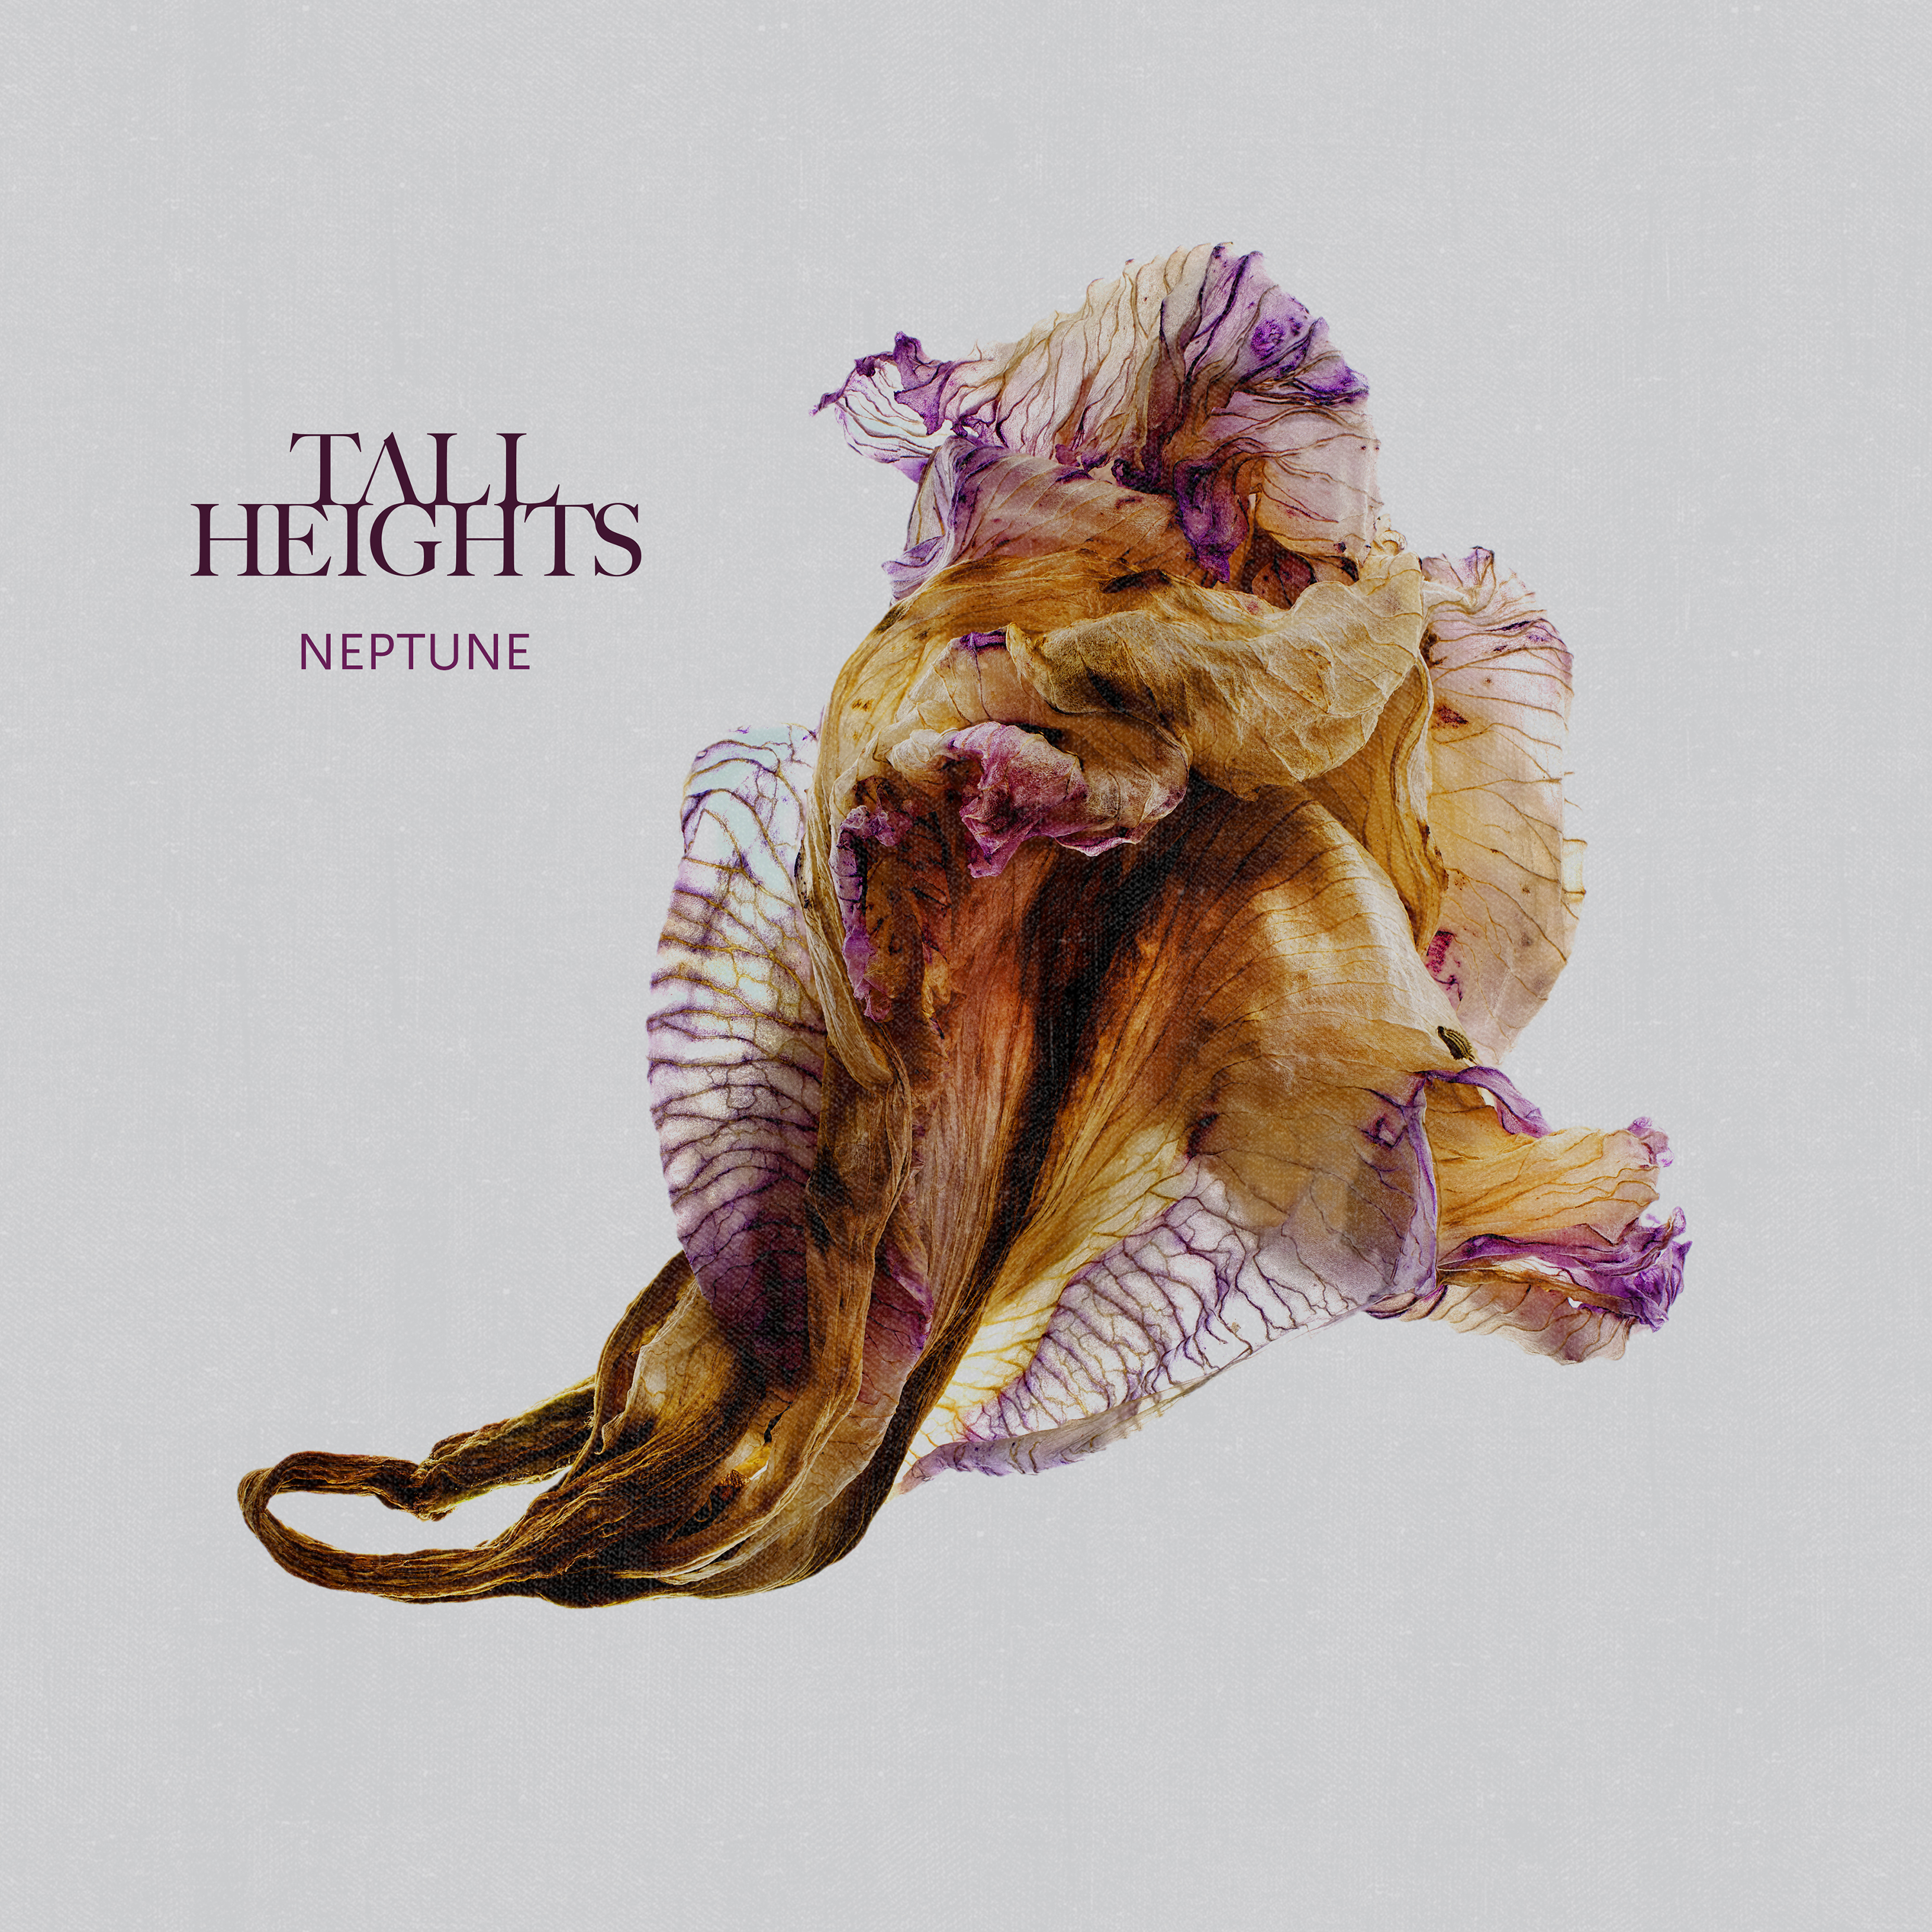 Tall Heights' new album, Neptune, is out now featuring Spirit Cold with over 7 million streams!